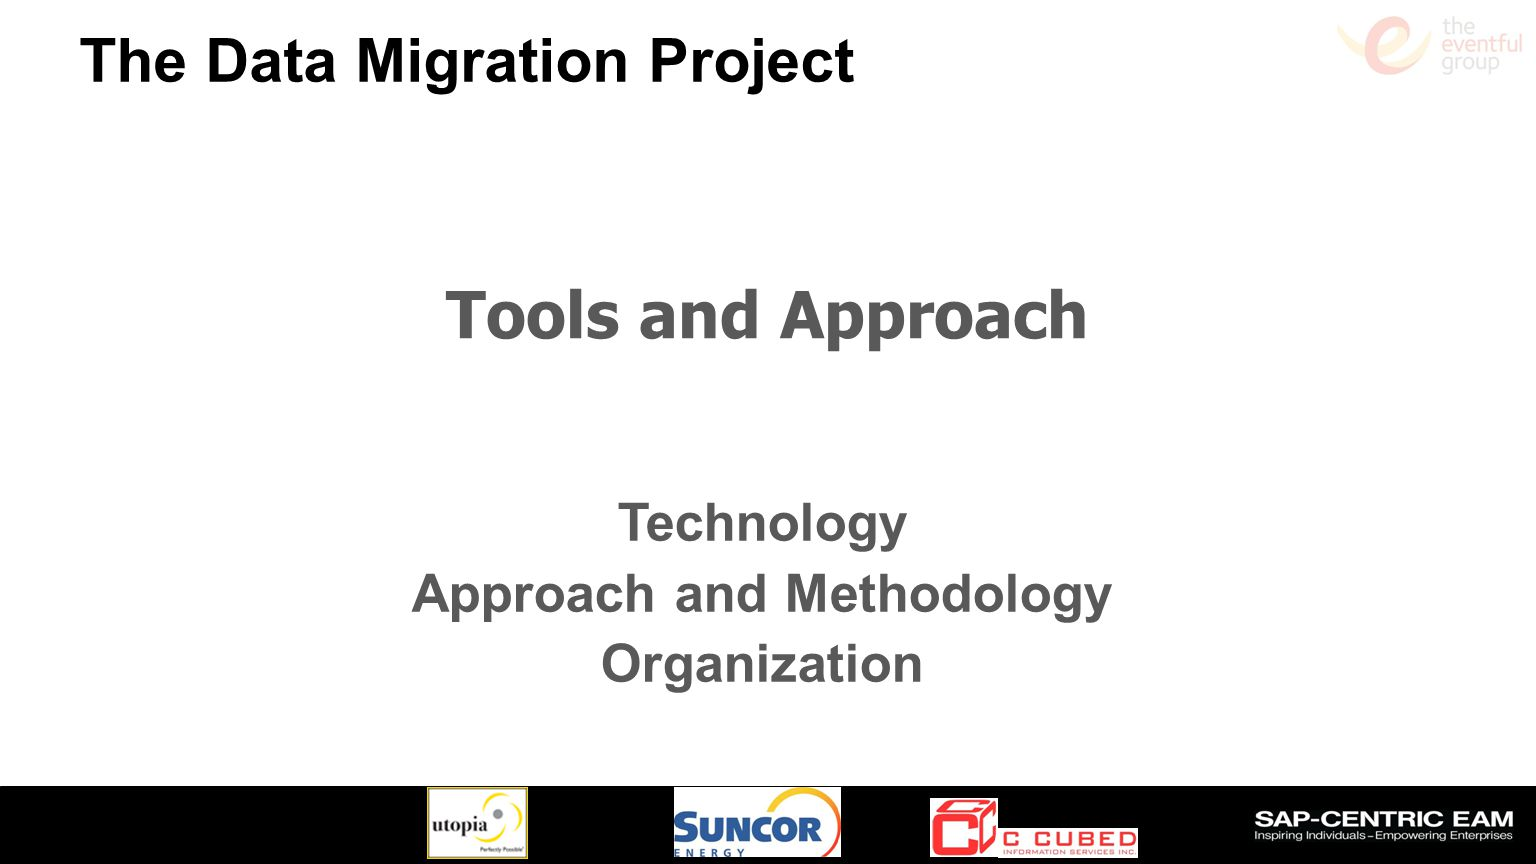 Technology Approach and Methodology Organization